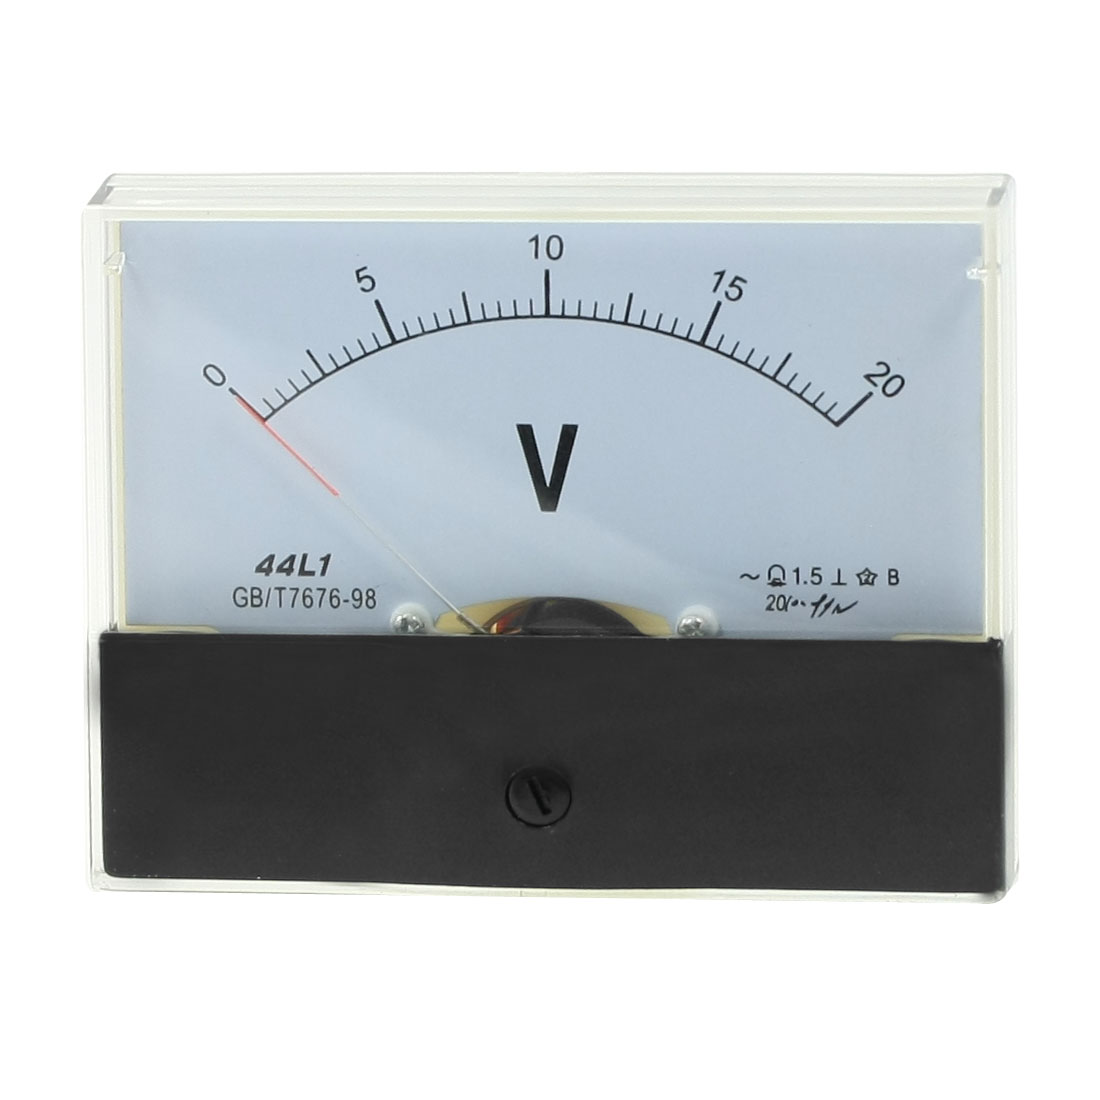 44L1 AC 0-20V Analogue Needle Panel Meter Voltmeter